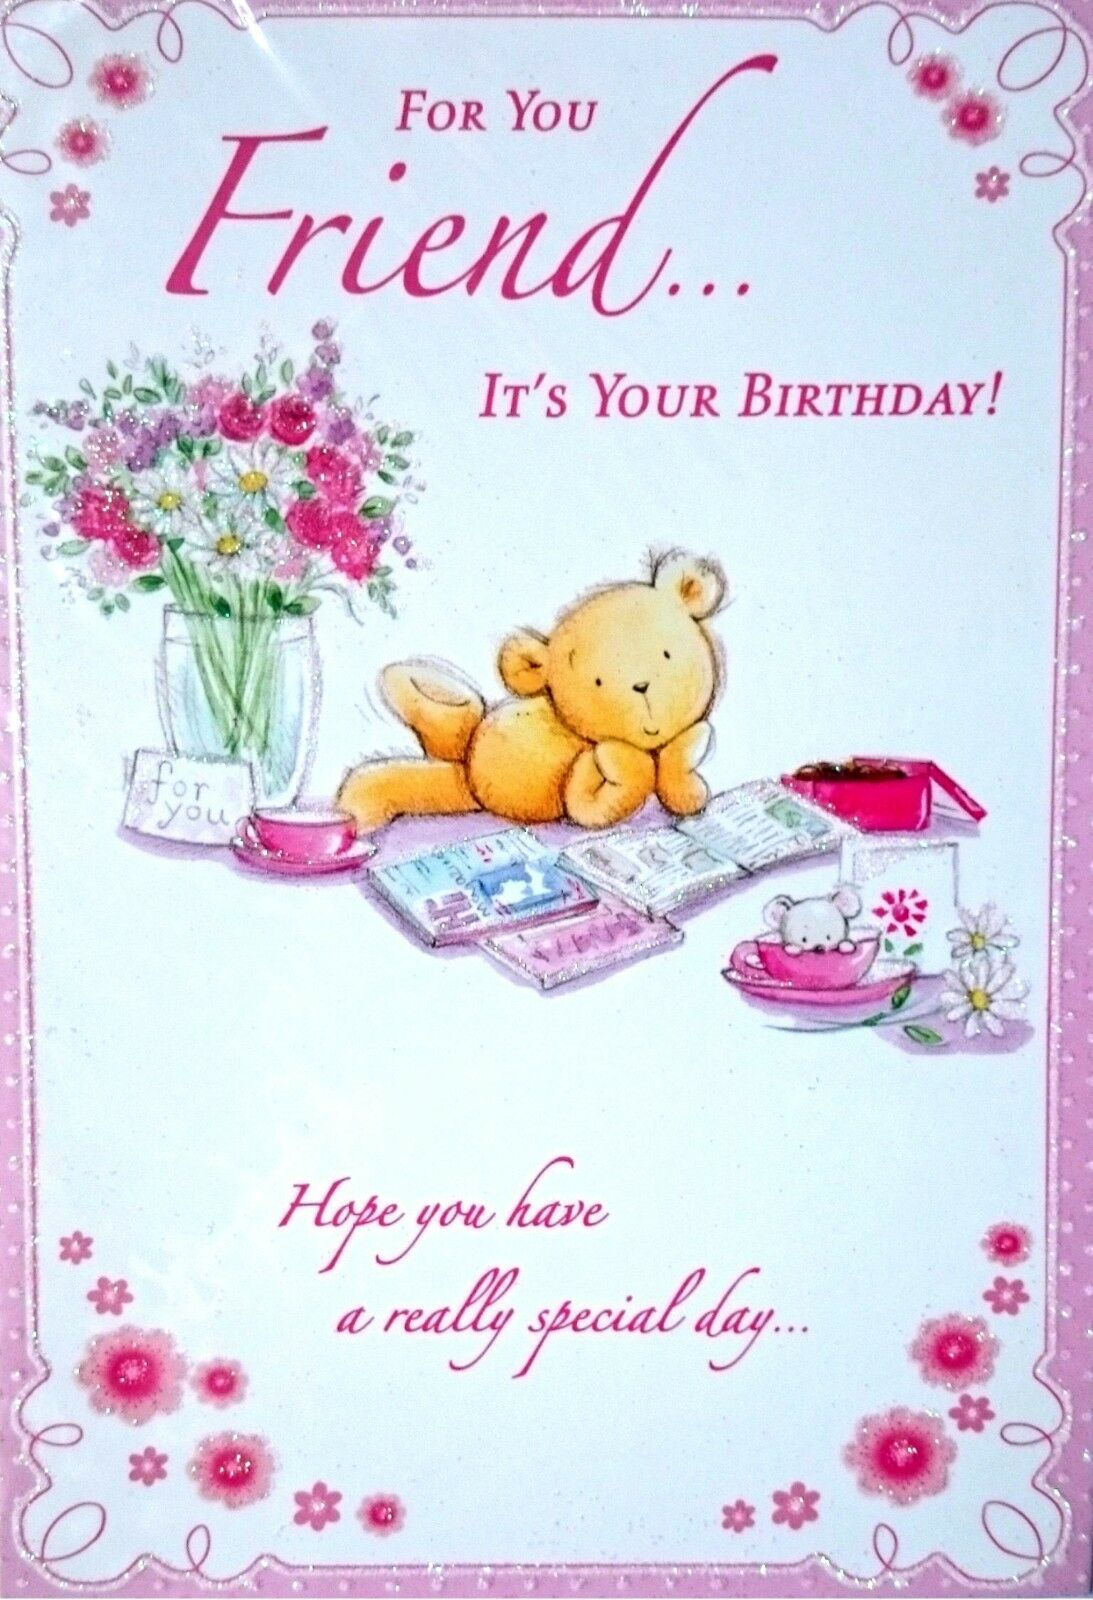 Birthday Cards For Friends Birthday Wishes Friend Free Postage